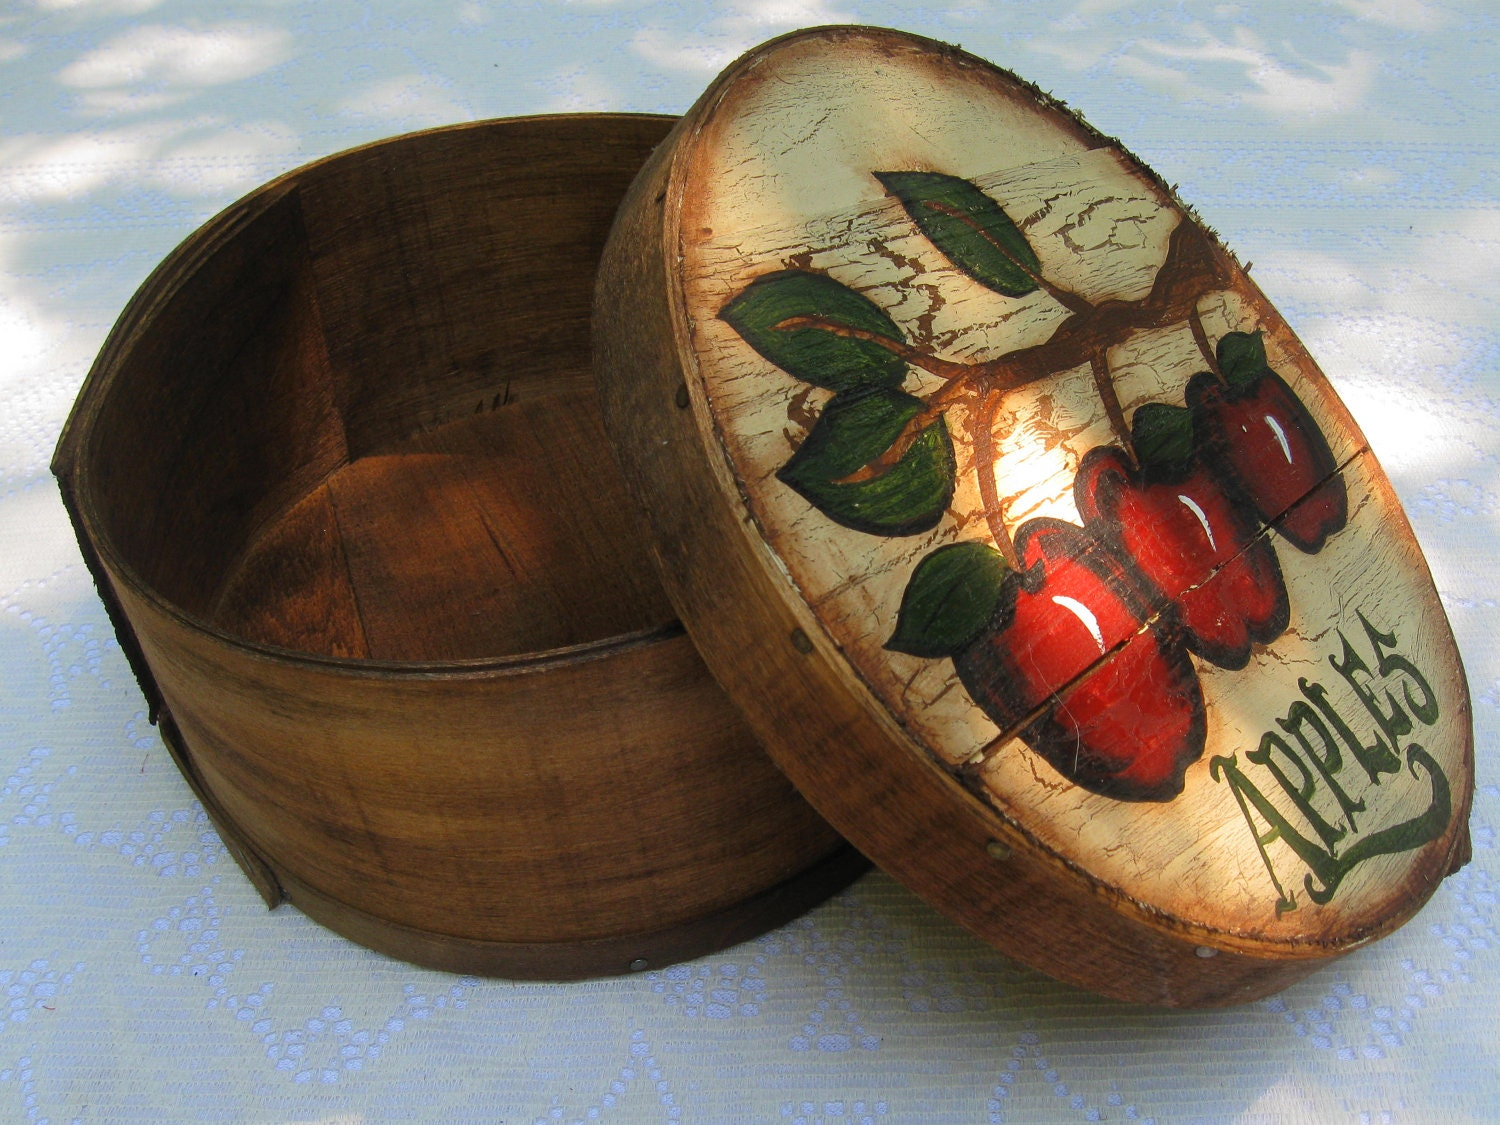 Vintage Handpainted Apple Box/ Basket- Home or Event Decoration - naturescallingjess